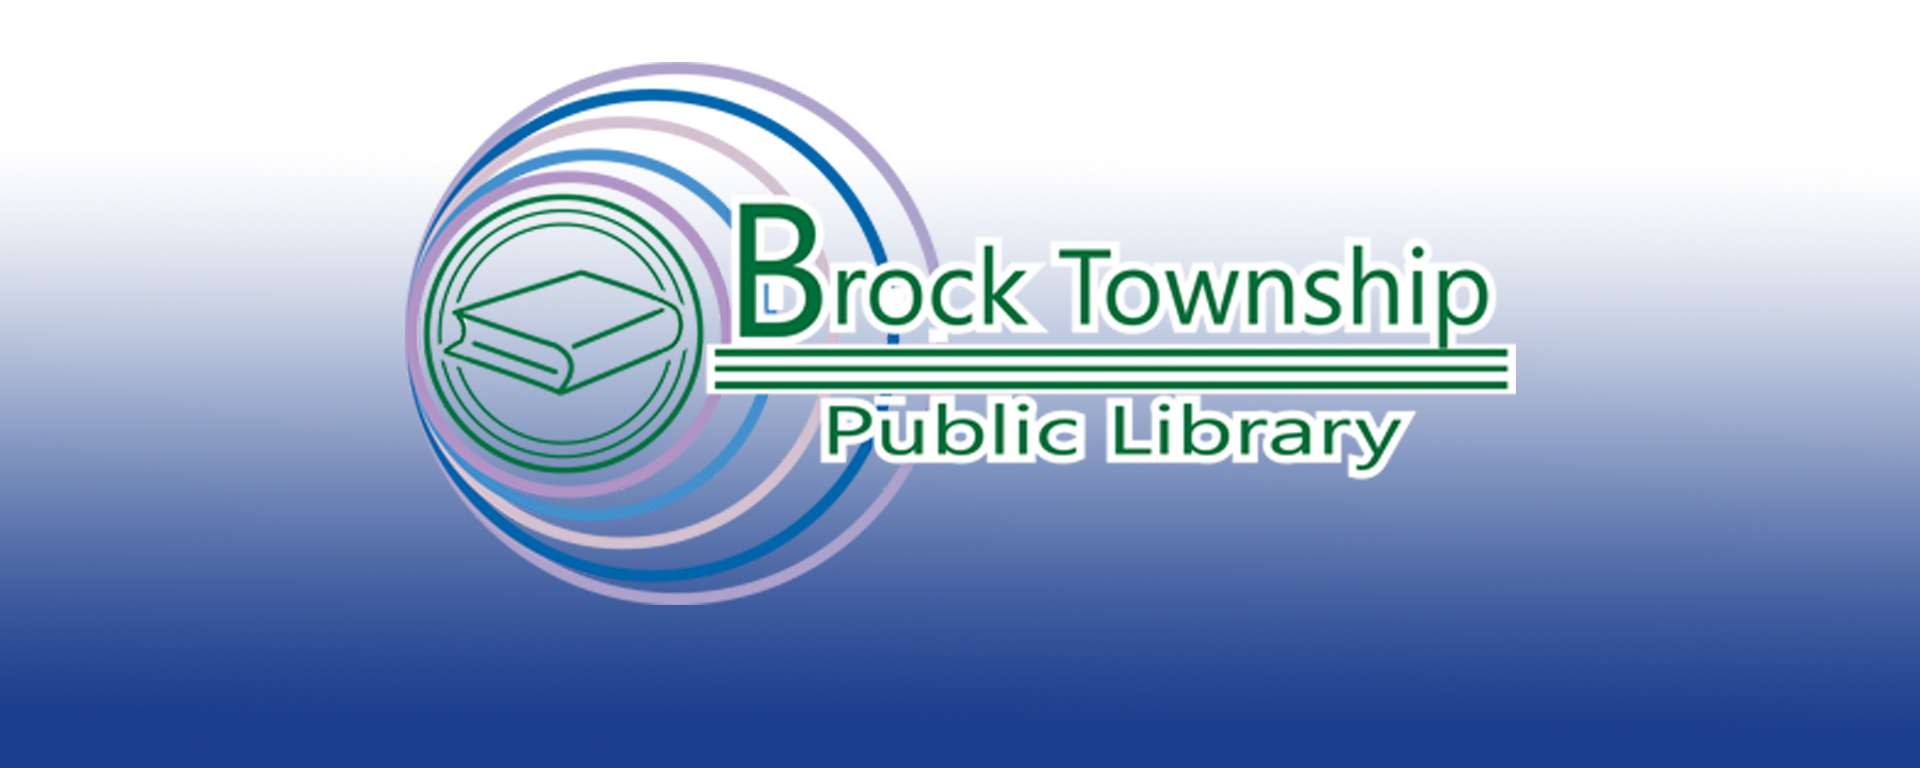 Brock Township Public Library launches third annual amateur writing contest